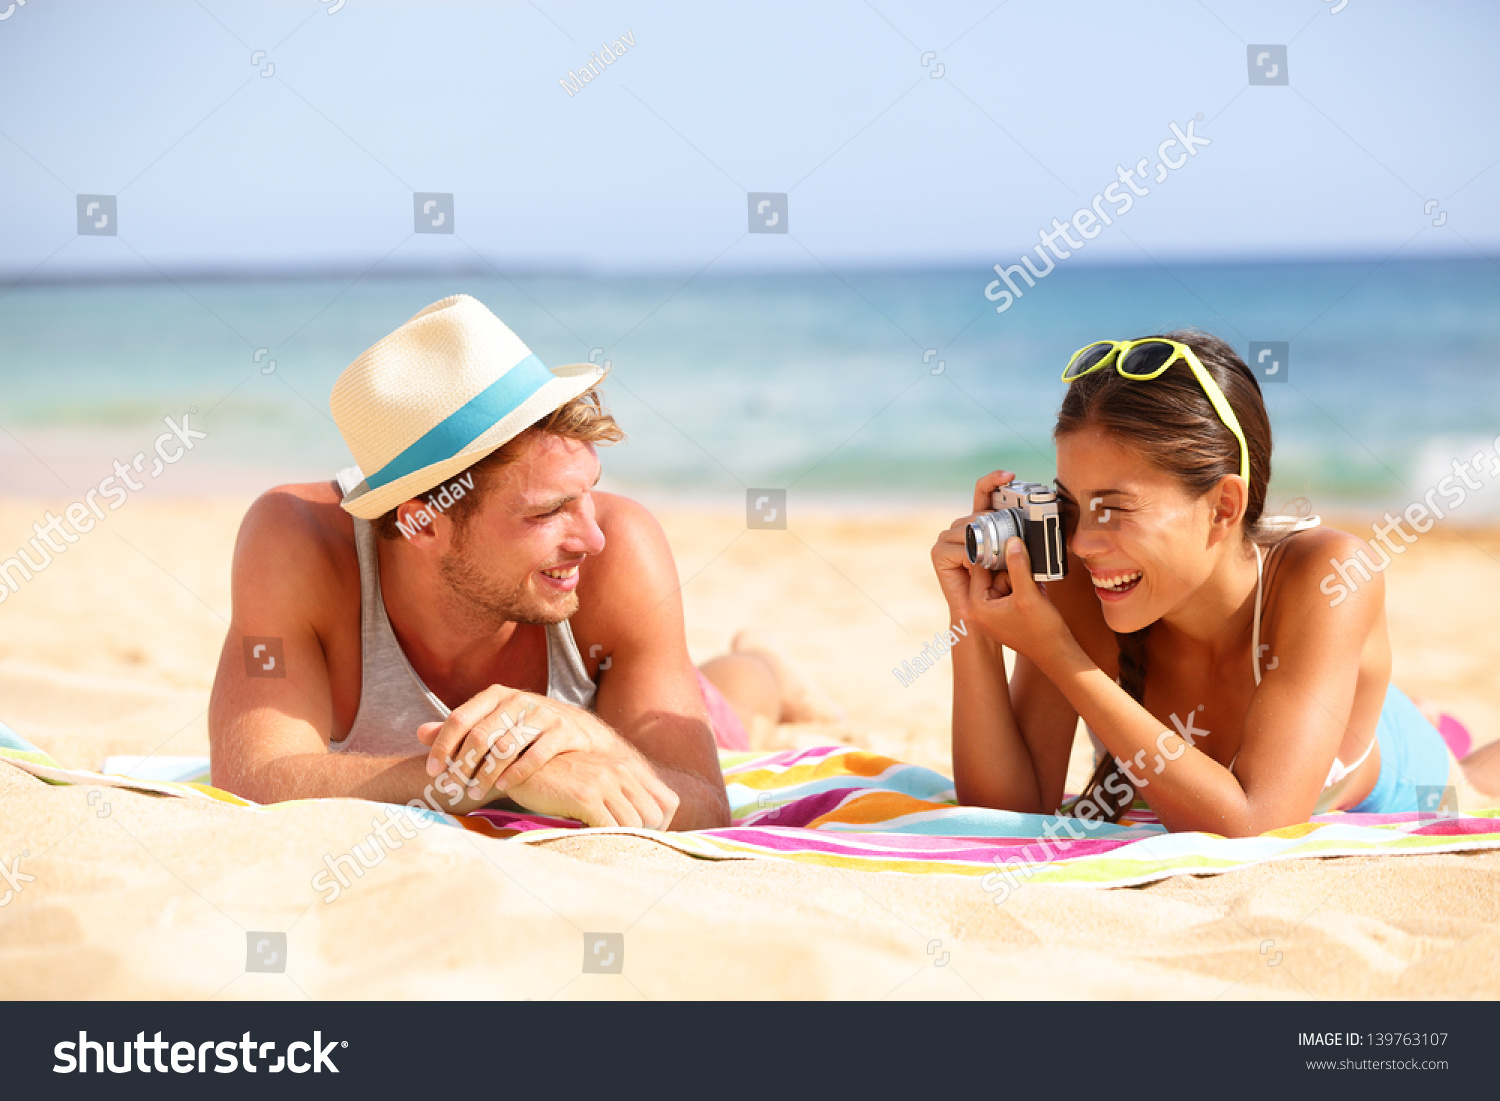 Beach fun couple travel. Woman taking photo picture of man smiling happy with retro vintage camera, Cool trendy modern hipster interracial couple on summer holidays vacation on tropical beach. #139763107